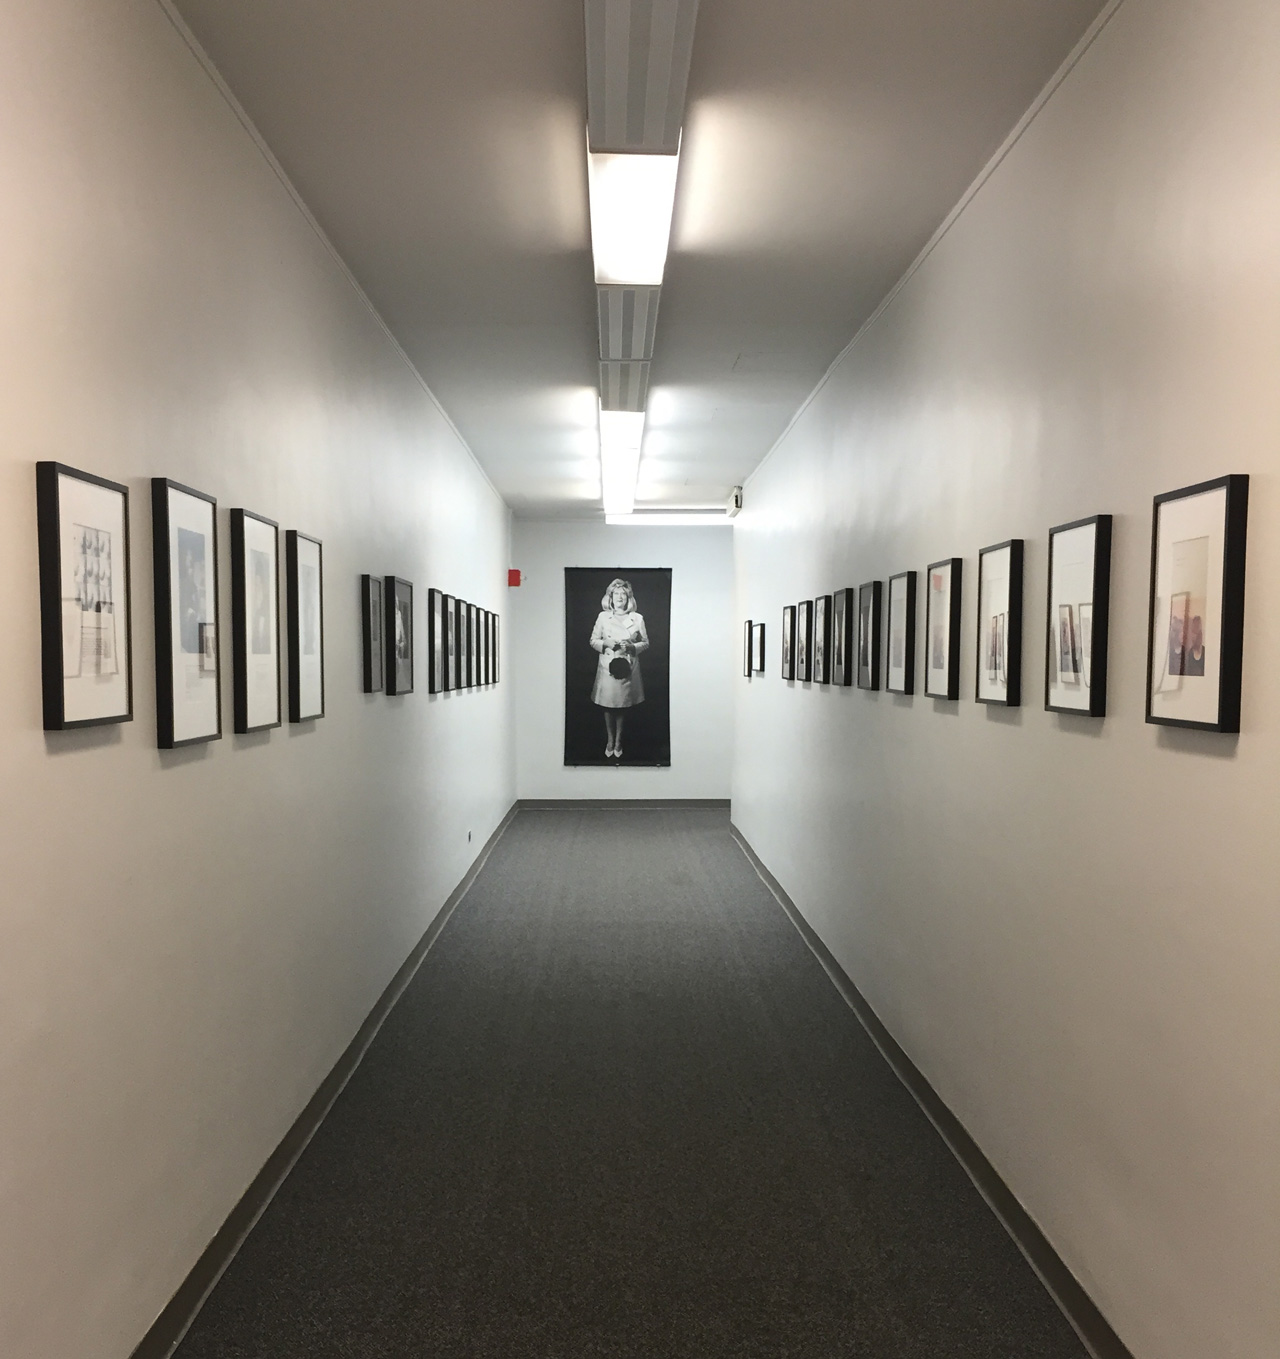 Hallway entrance to Martha Wilson: Downtown exhibit at the Fales Library, 2015. (All photos by author for Hyperallergic)